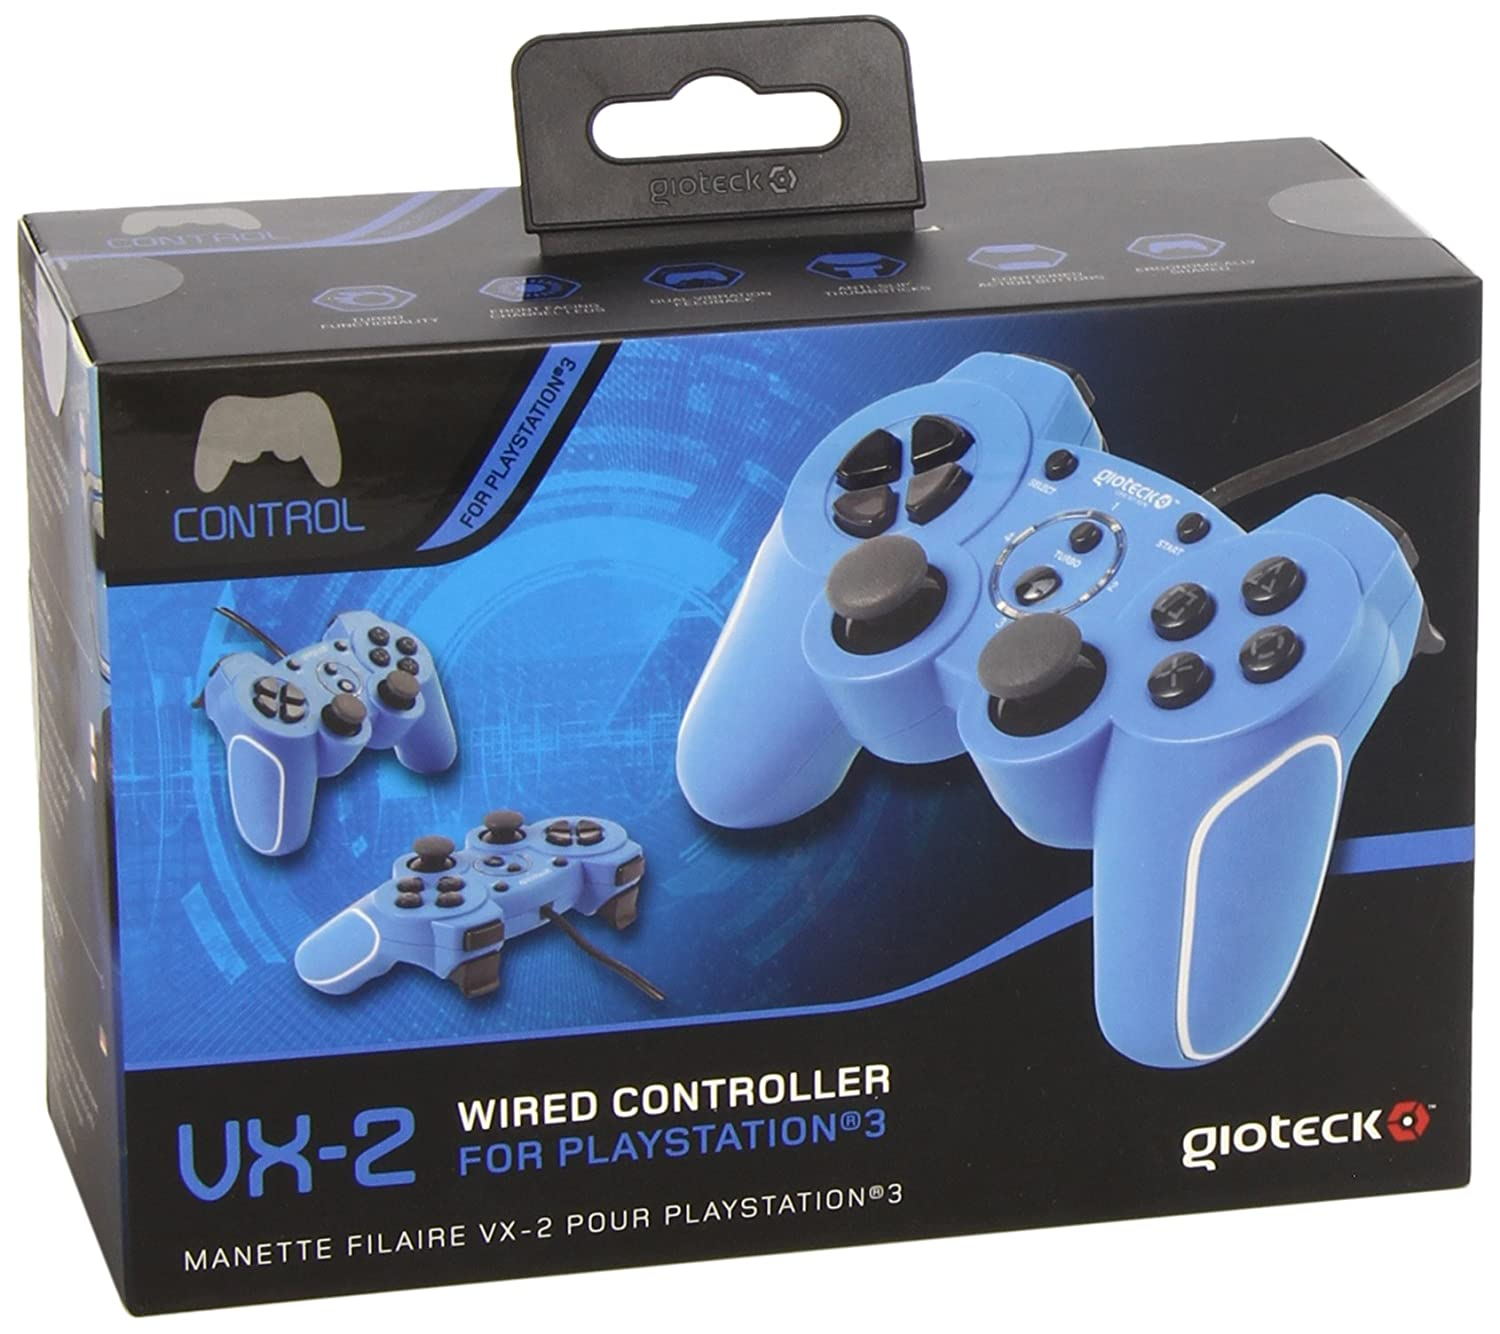 Gioteck VX-2 Wired Controller - Blue (PS3/PC): Amazon.co.uk: PC ...